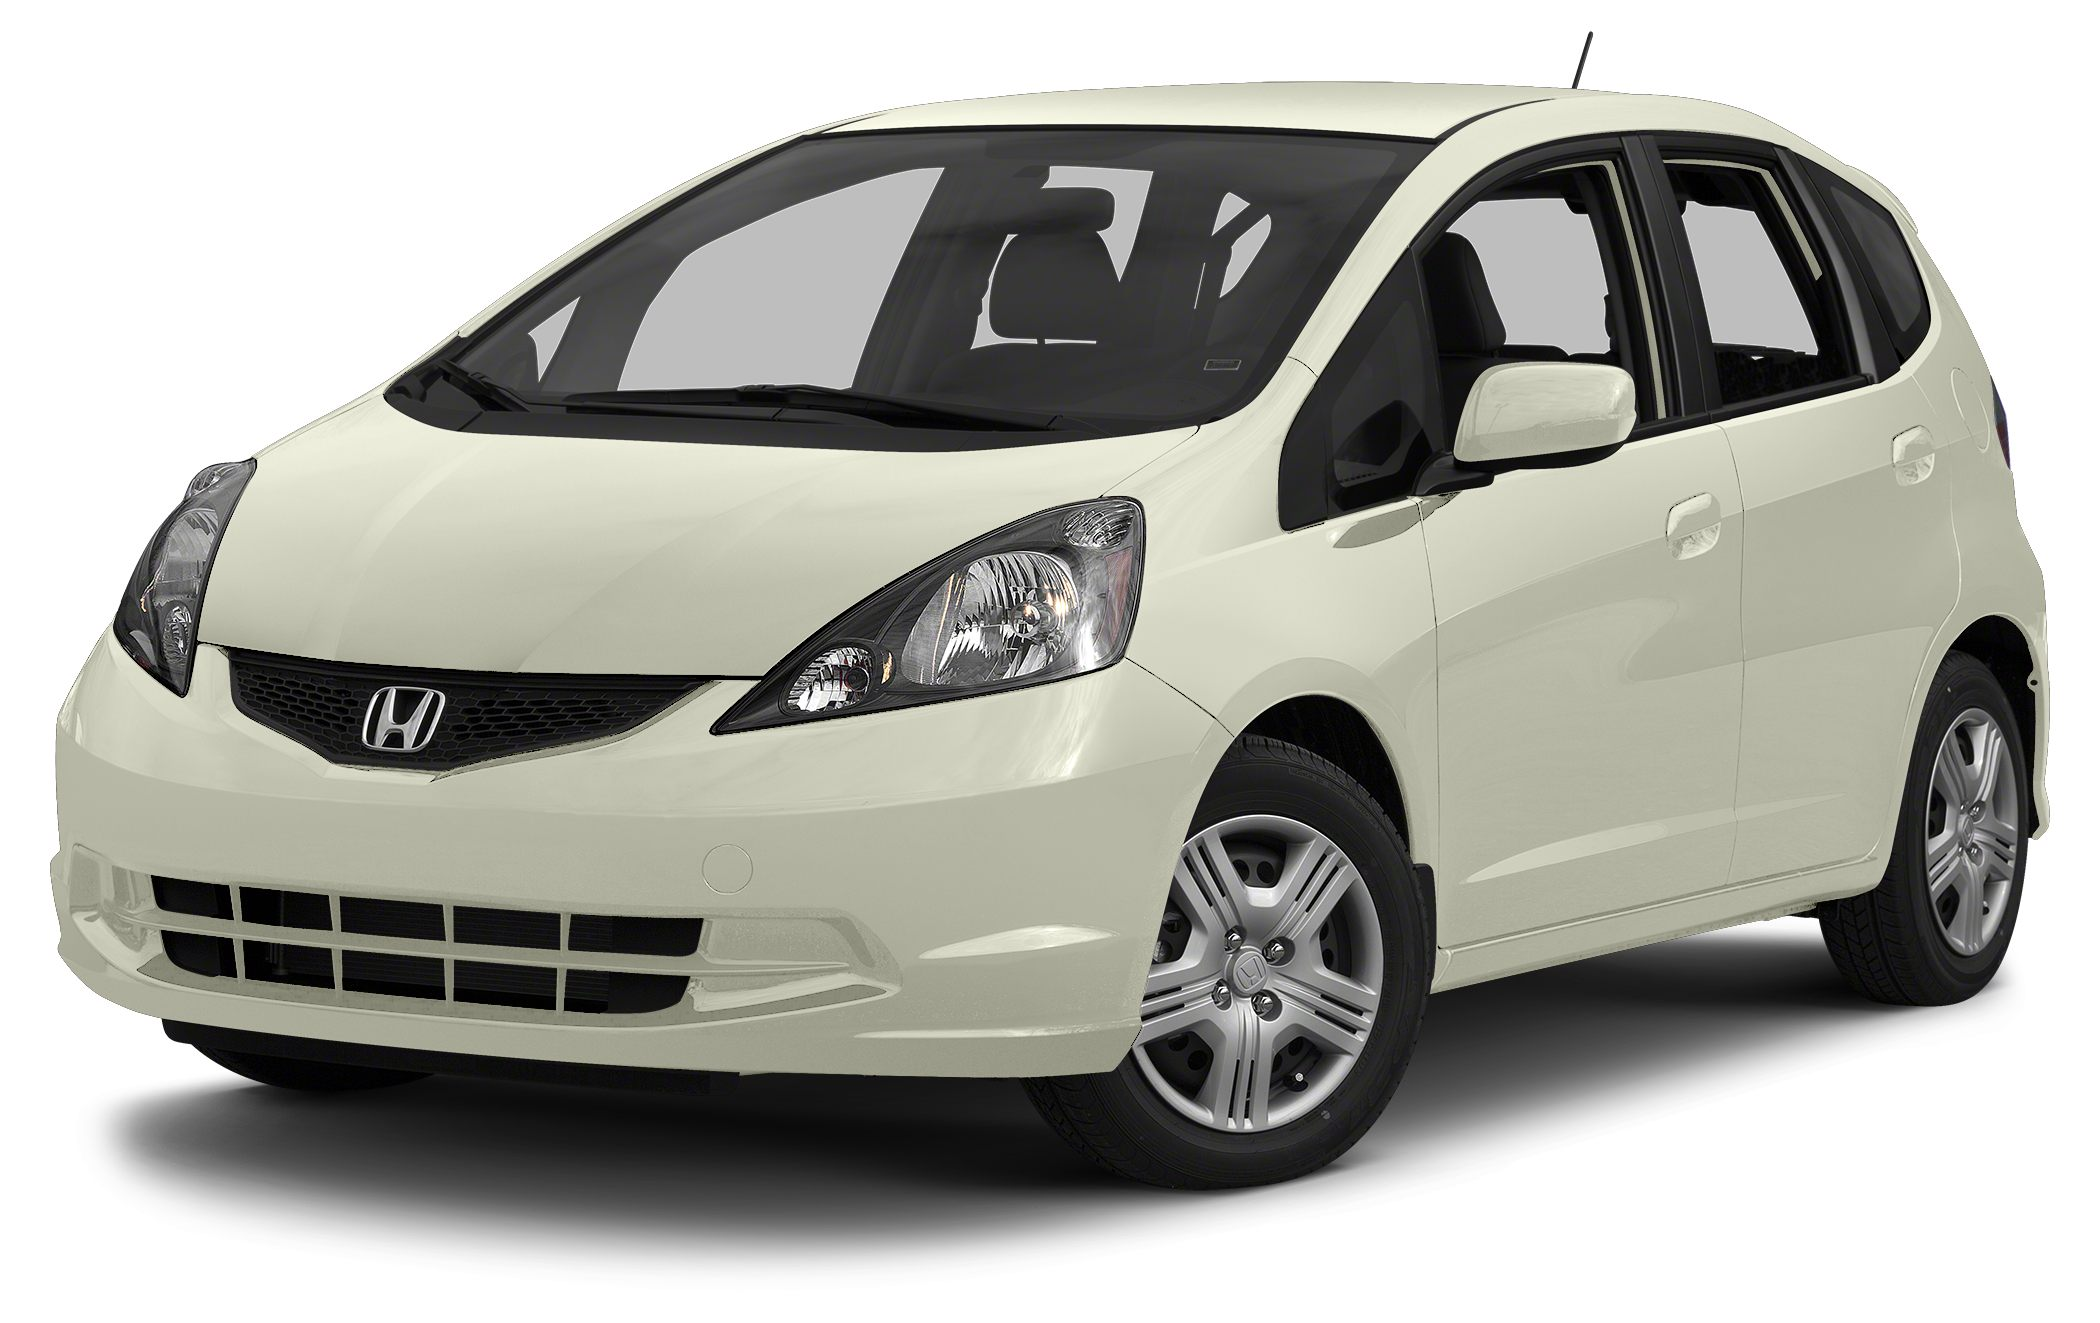 2013 Honda Fit Base Grab a steal on this 2013 Honda Fit 5DR HB AT before its too late Comfortabl